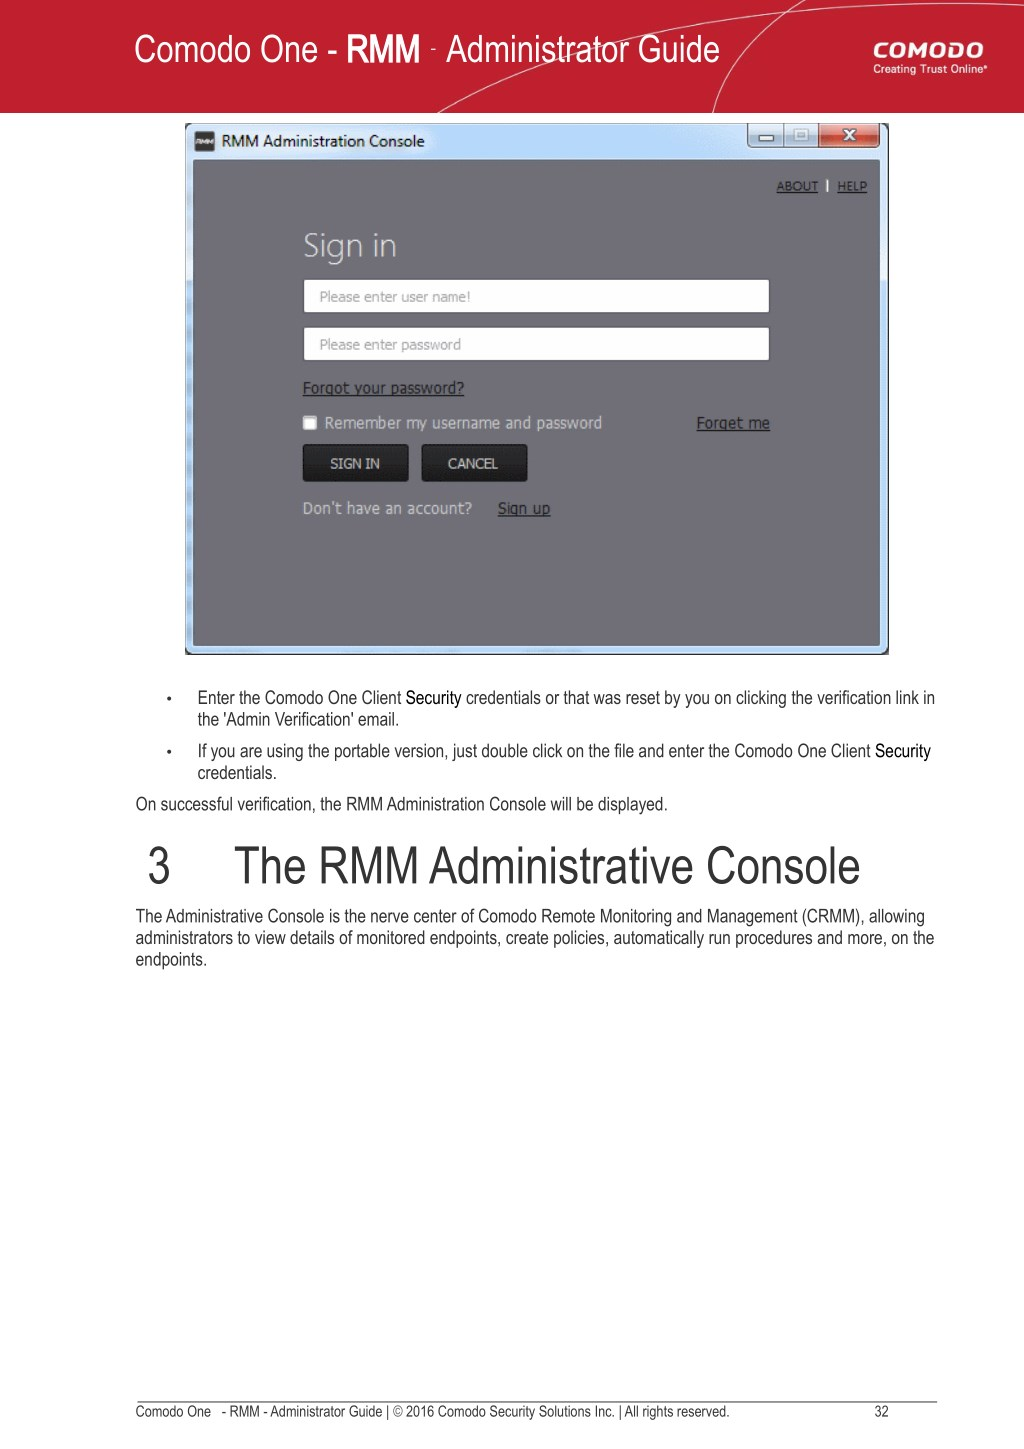 PPT - RMM Administrator Guide - Comodo One PowerPoint